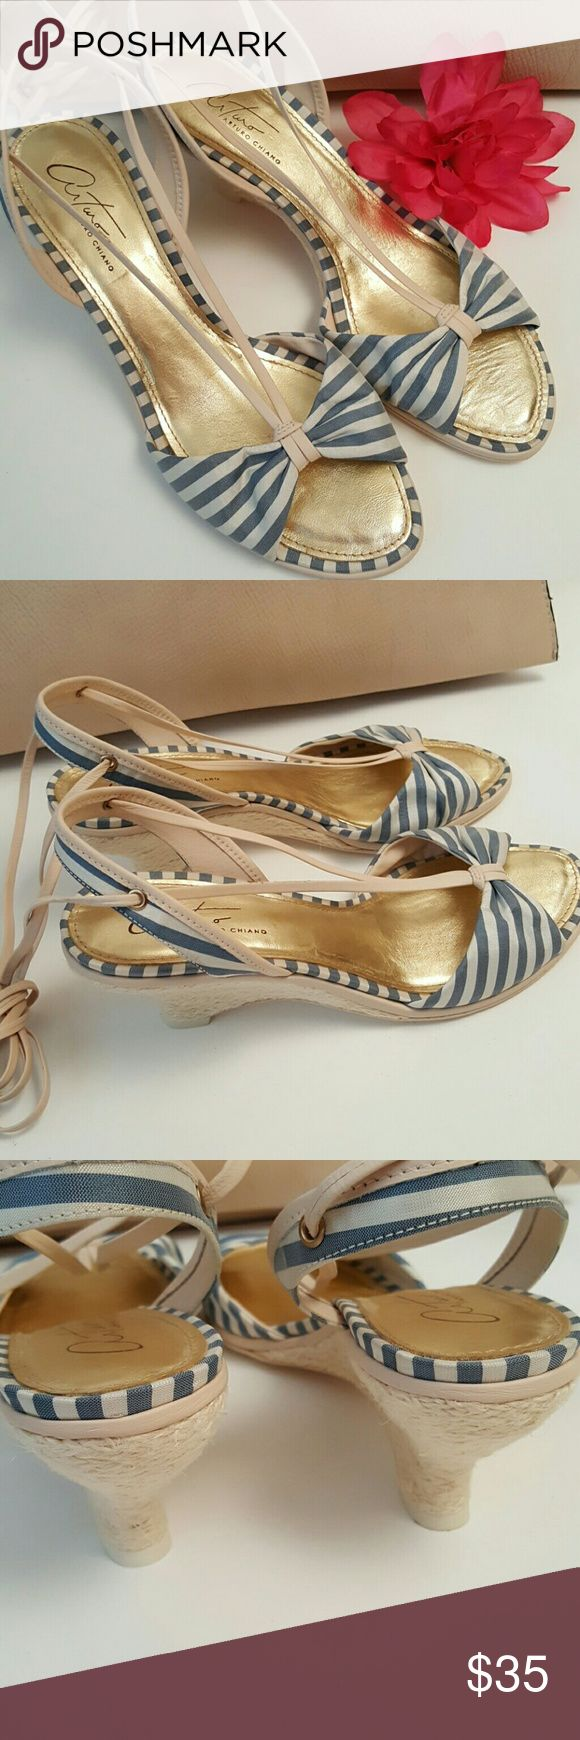 Arturo Chiang LaceUp Blue Stripe Wedge Sandles New without tags. A few marks on bottom from storage, but never worn. Blue stripe satin material. Leather sole. A very simple yet elegant shoe. Arturo Chiang Shoes Sandals